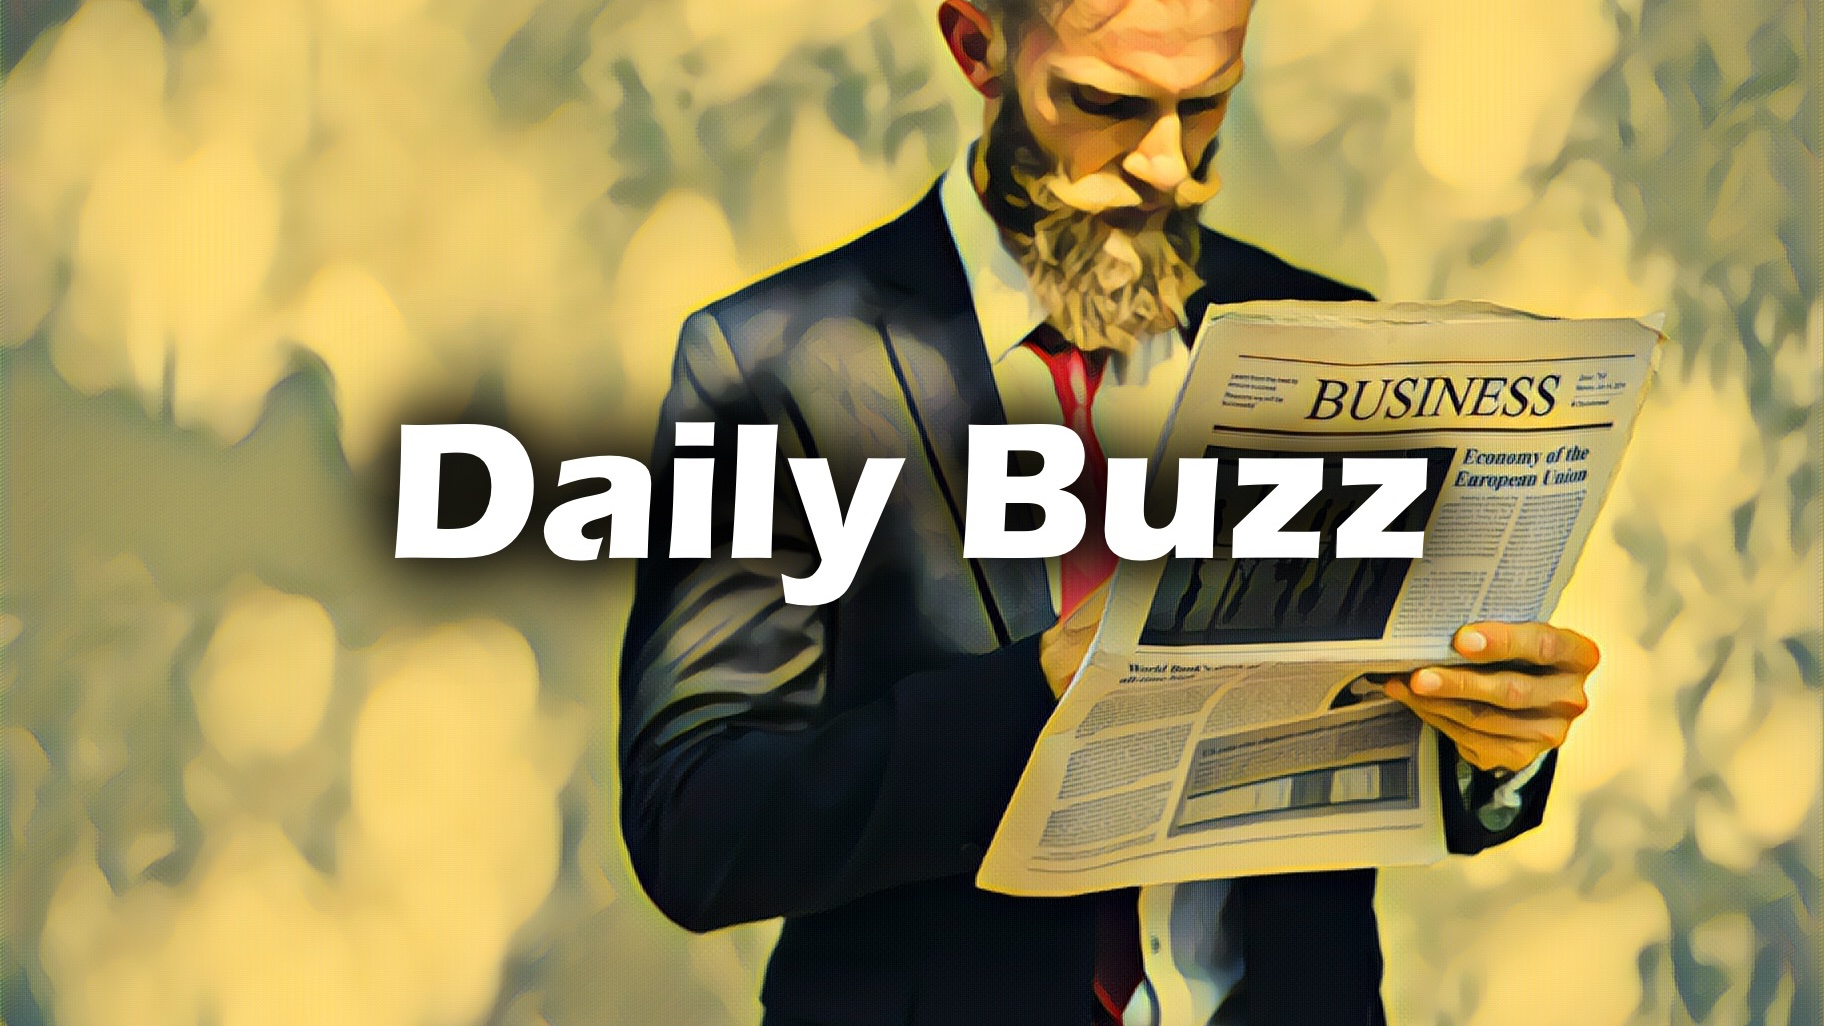 DailyBuzz Wednesday 31 October 2018